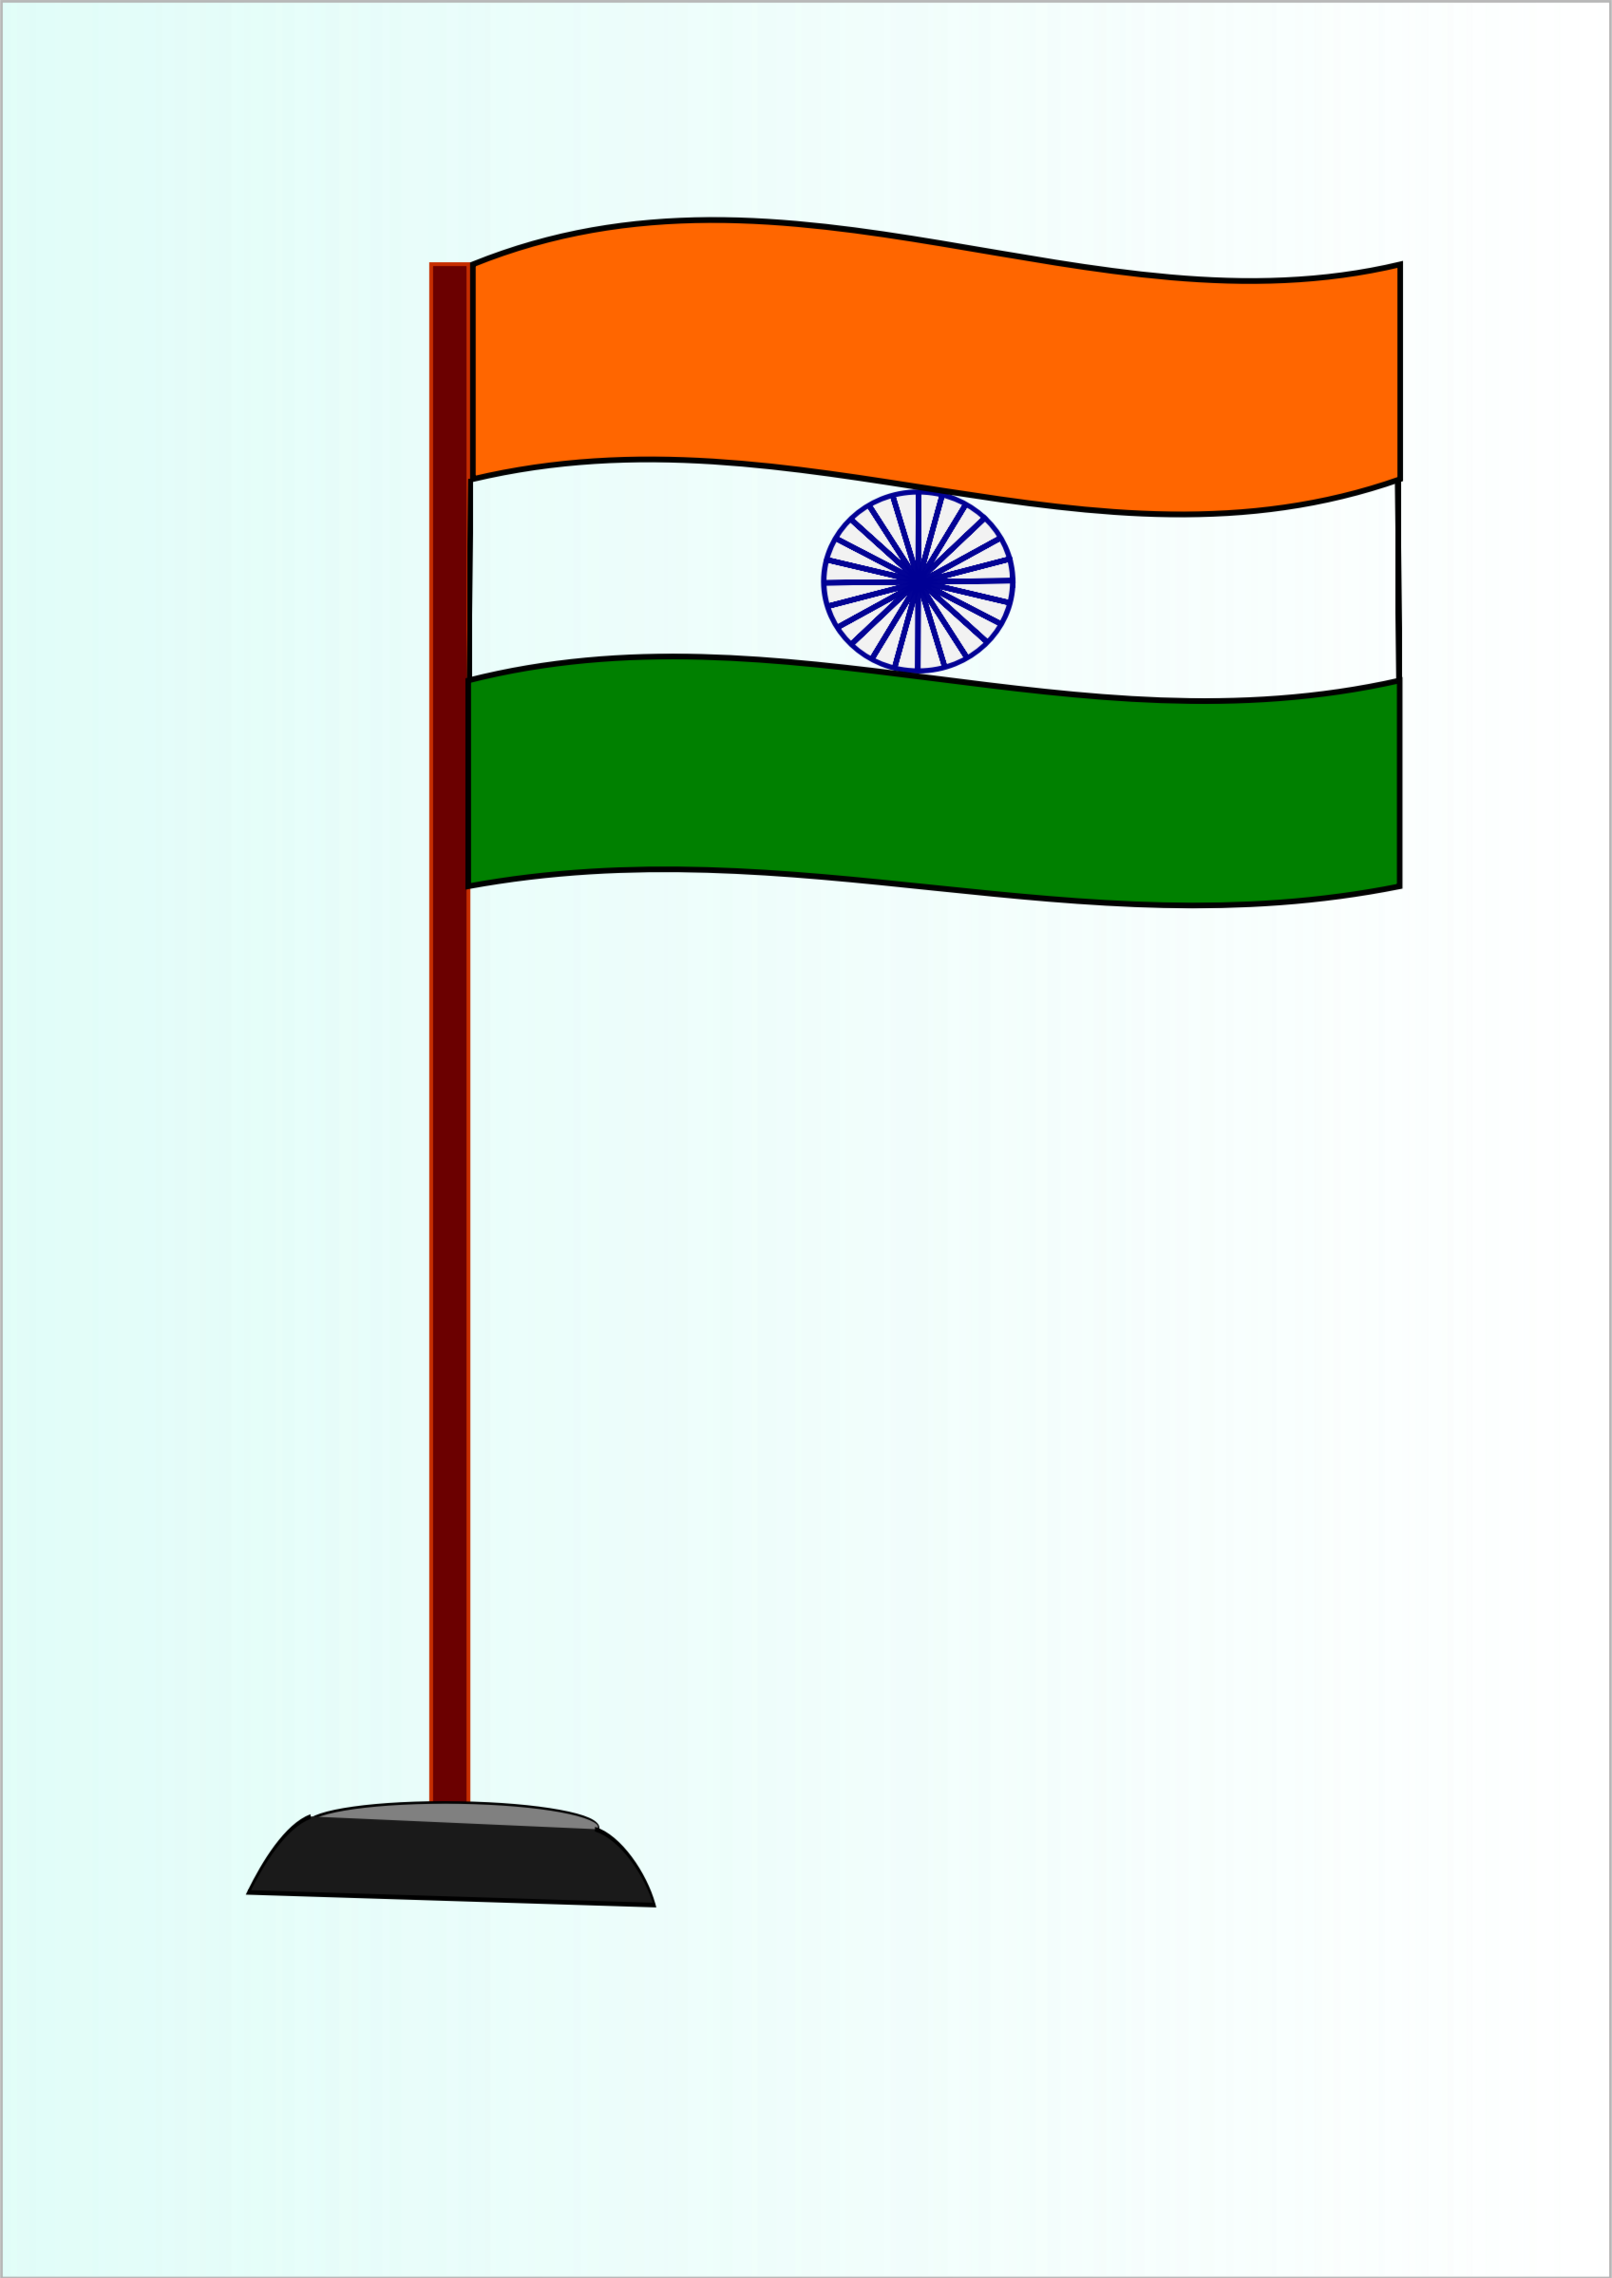 Indian National Flag By Saurabhgup889 The Is A Horizontal.